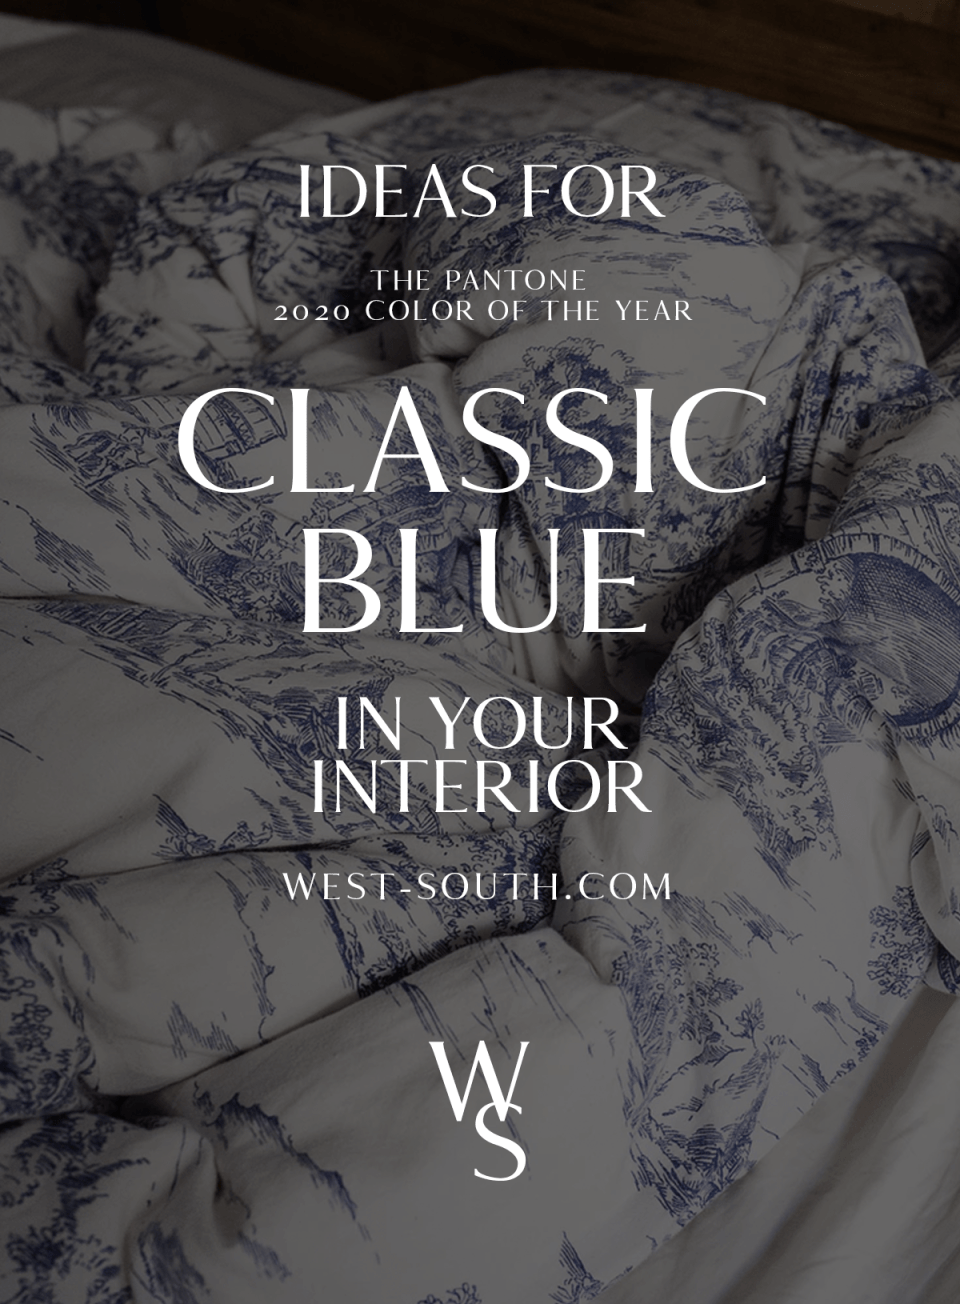 image for pinterest for pantone color of the year classic blue interiors from west-south